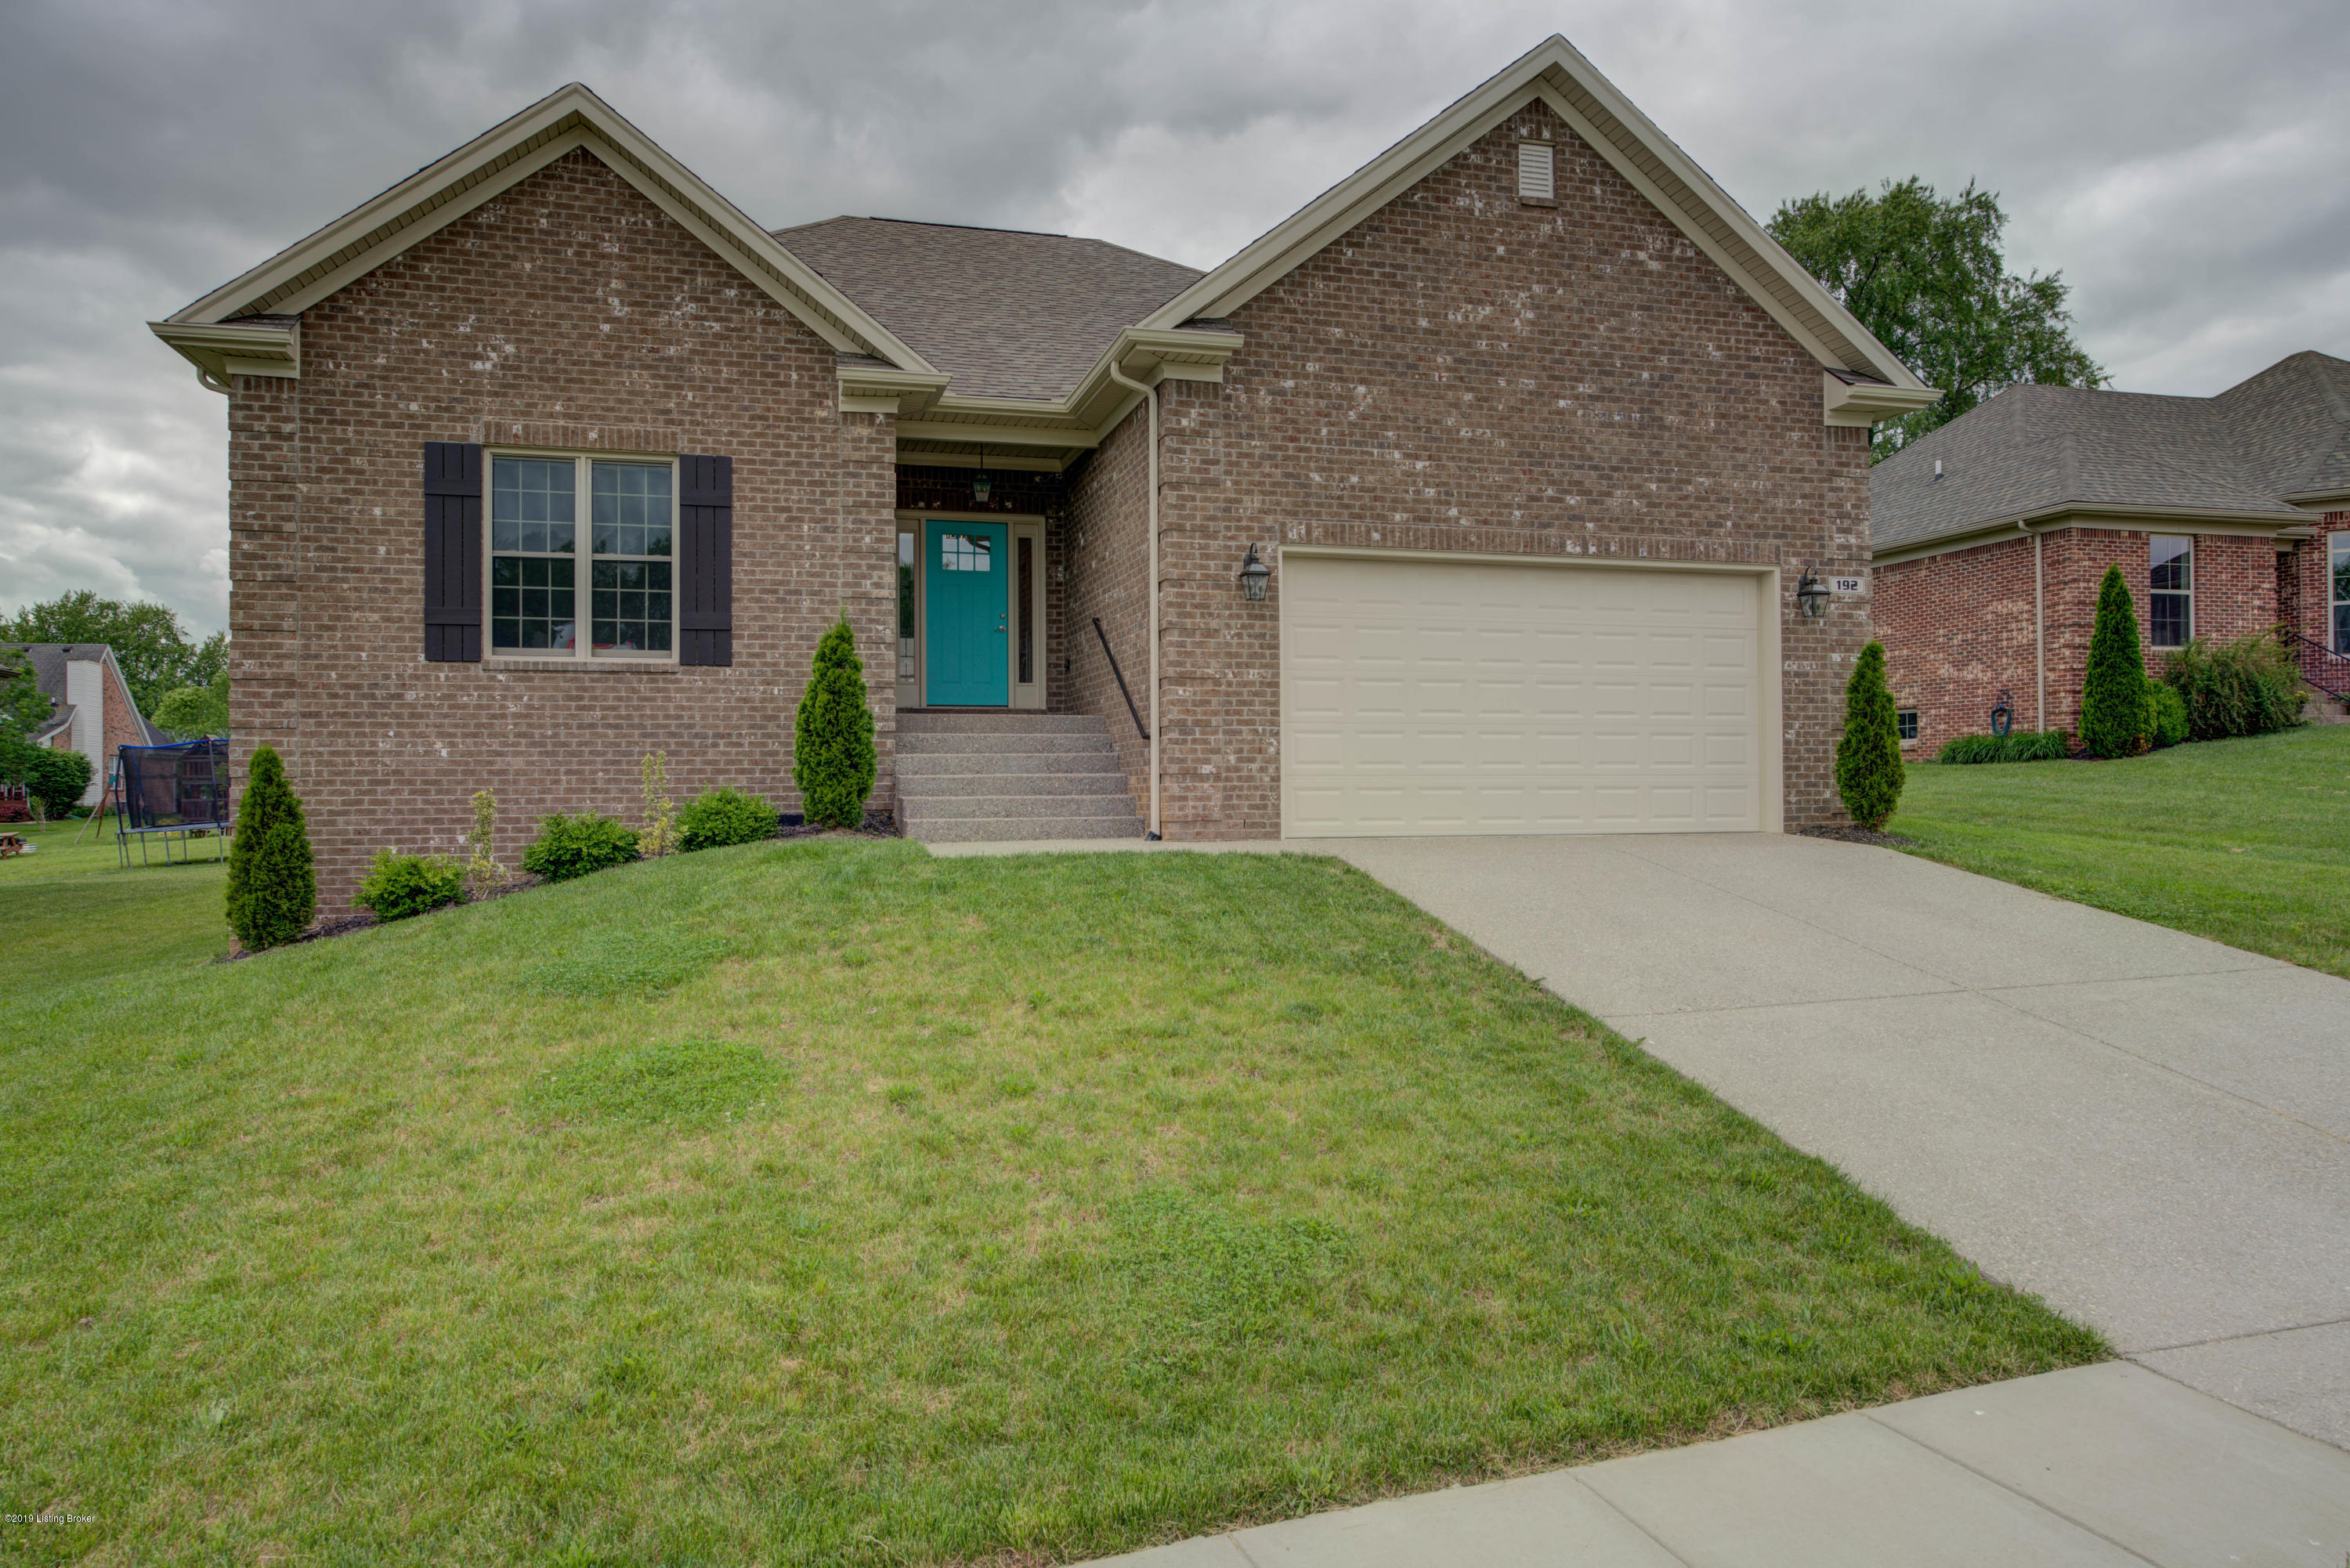 192 Blossom Cir, Shelbyville, Kentucky 40065